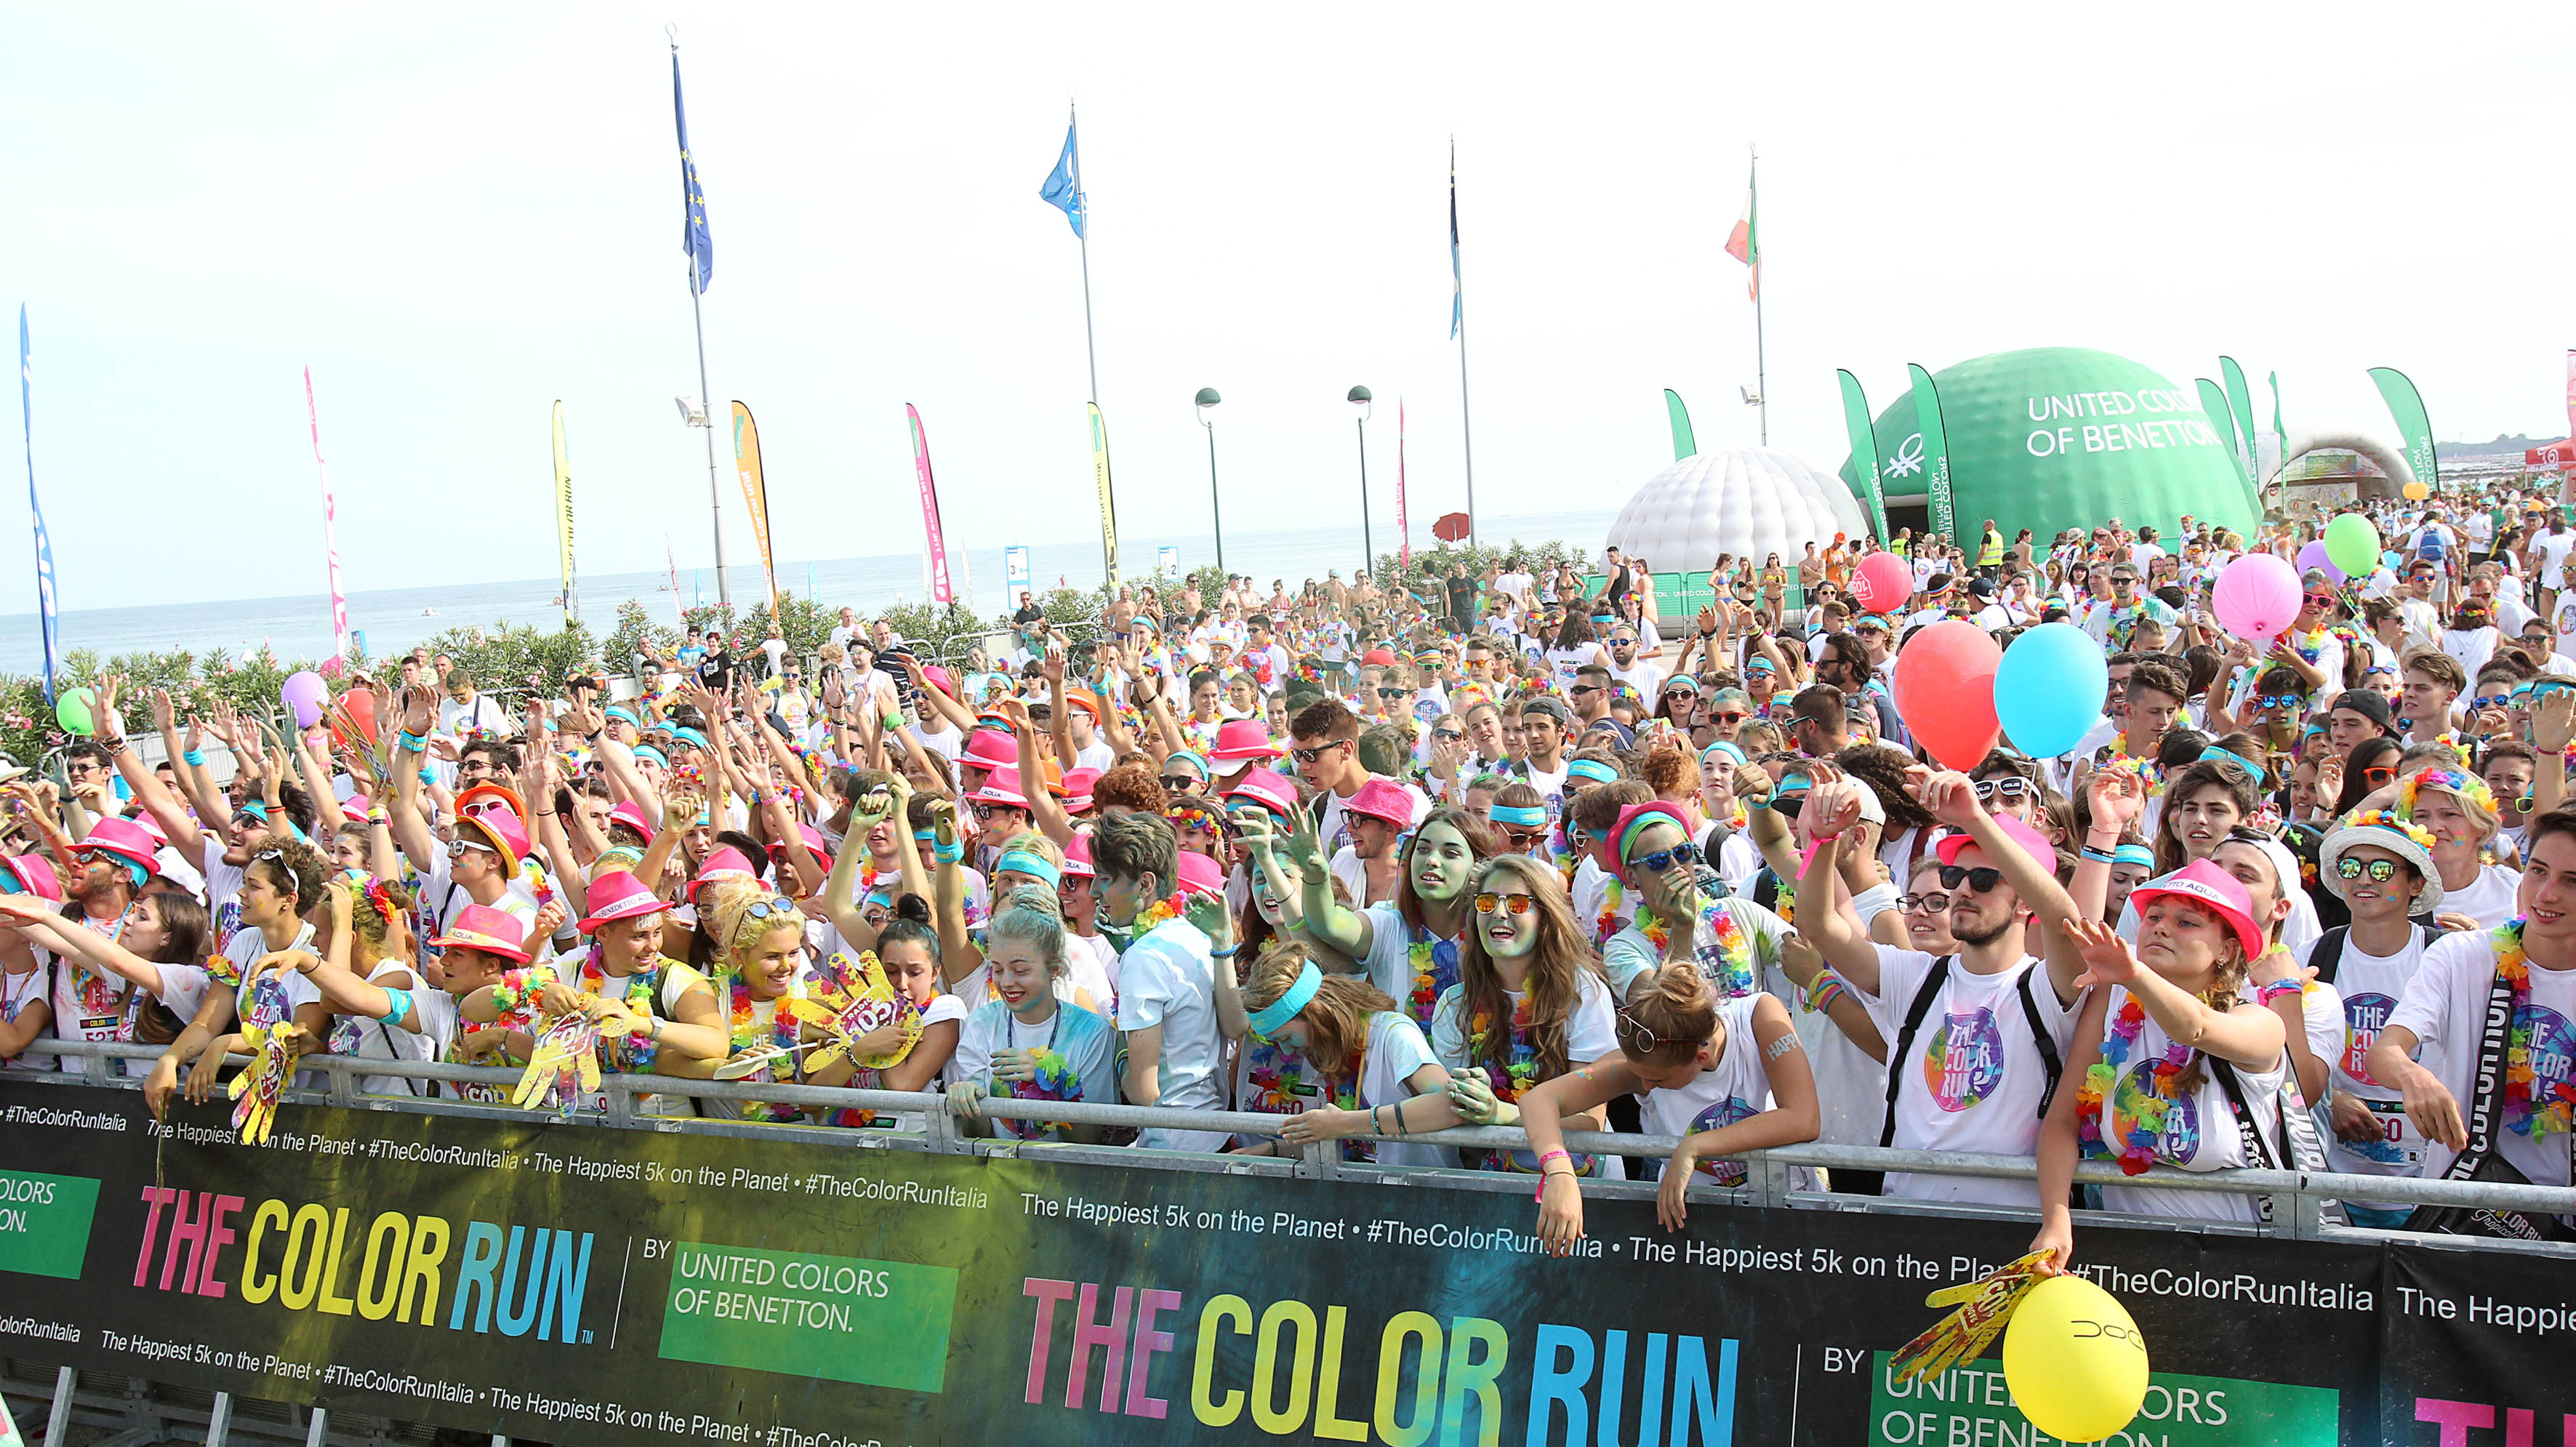 Venerdì 28 luglio The Color Run Village arriva al Tenda Bar di Lignano Pineta